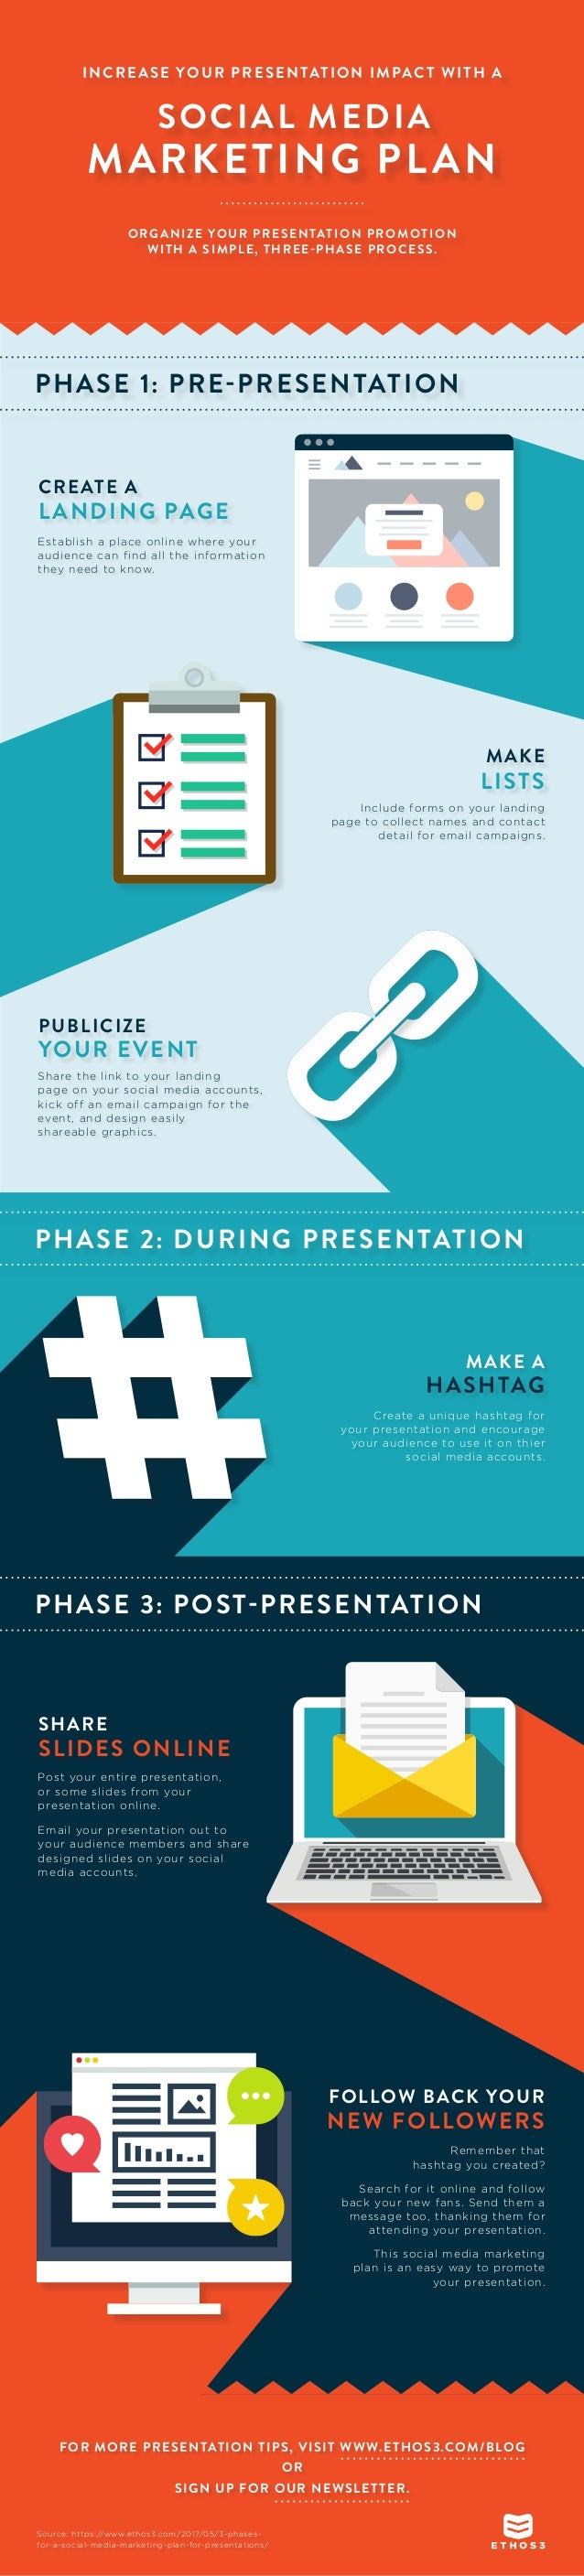 INCREASE YOUR PRESENTATION IMPACT WITH A ORGANIZE YOUR PRESENTATION PROMOTION WITH A SIMPLE, THREE-PHASE PROCESS. SOCIAL M...